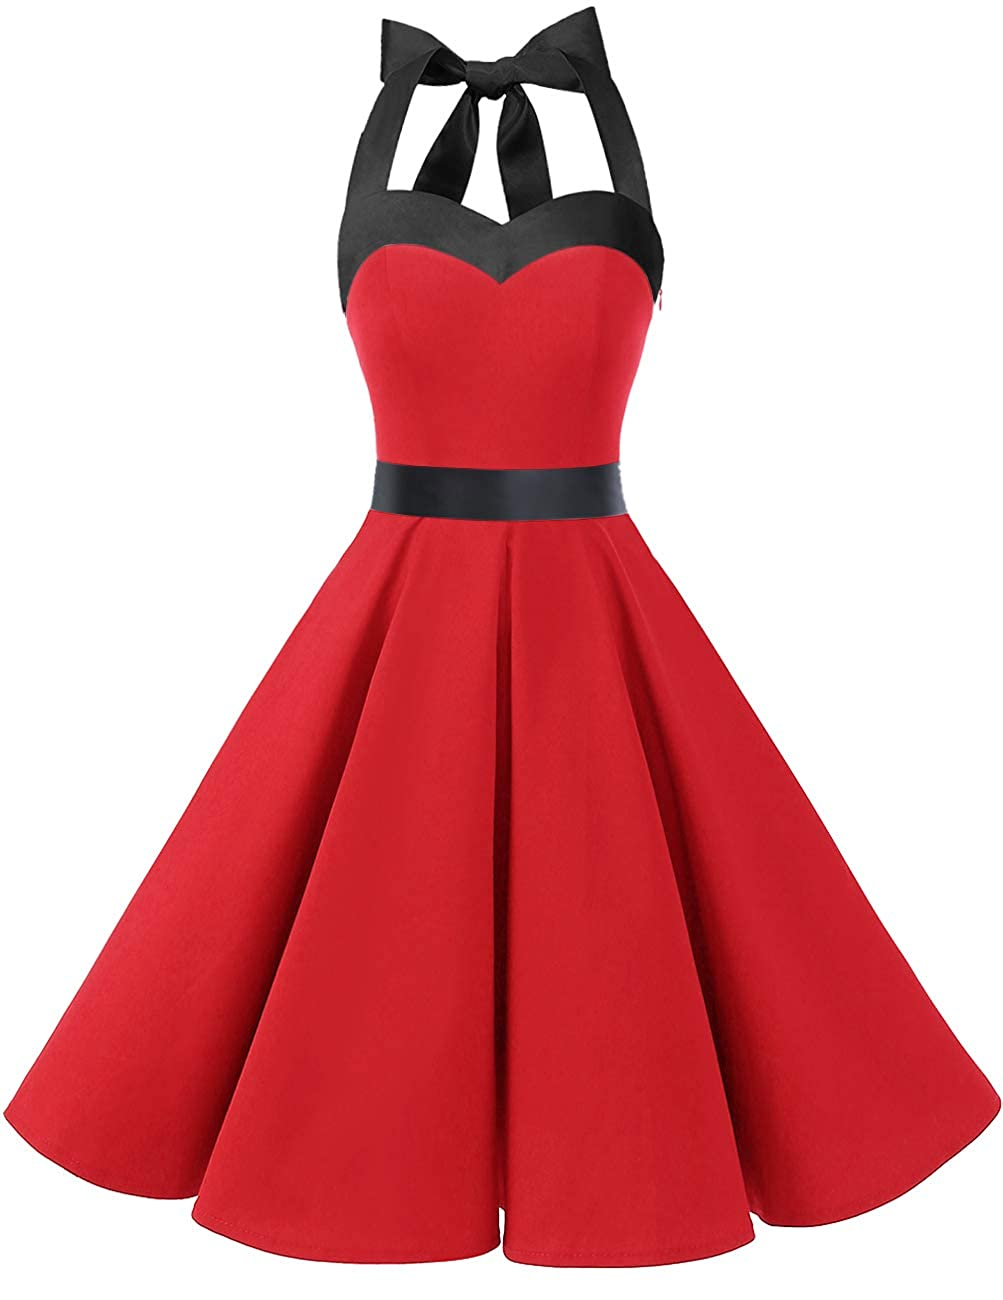 TALLA XS. Dresstells® Halter 50s Rockabilly Polka Dots Audrey Dress Retro Cocktail Dress Red Black XS